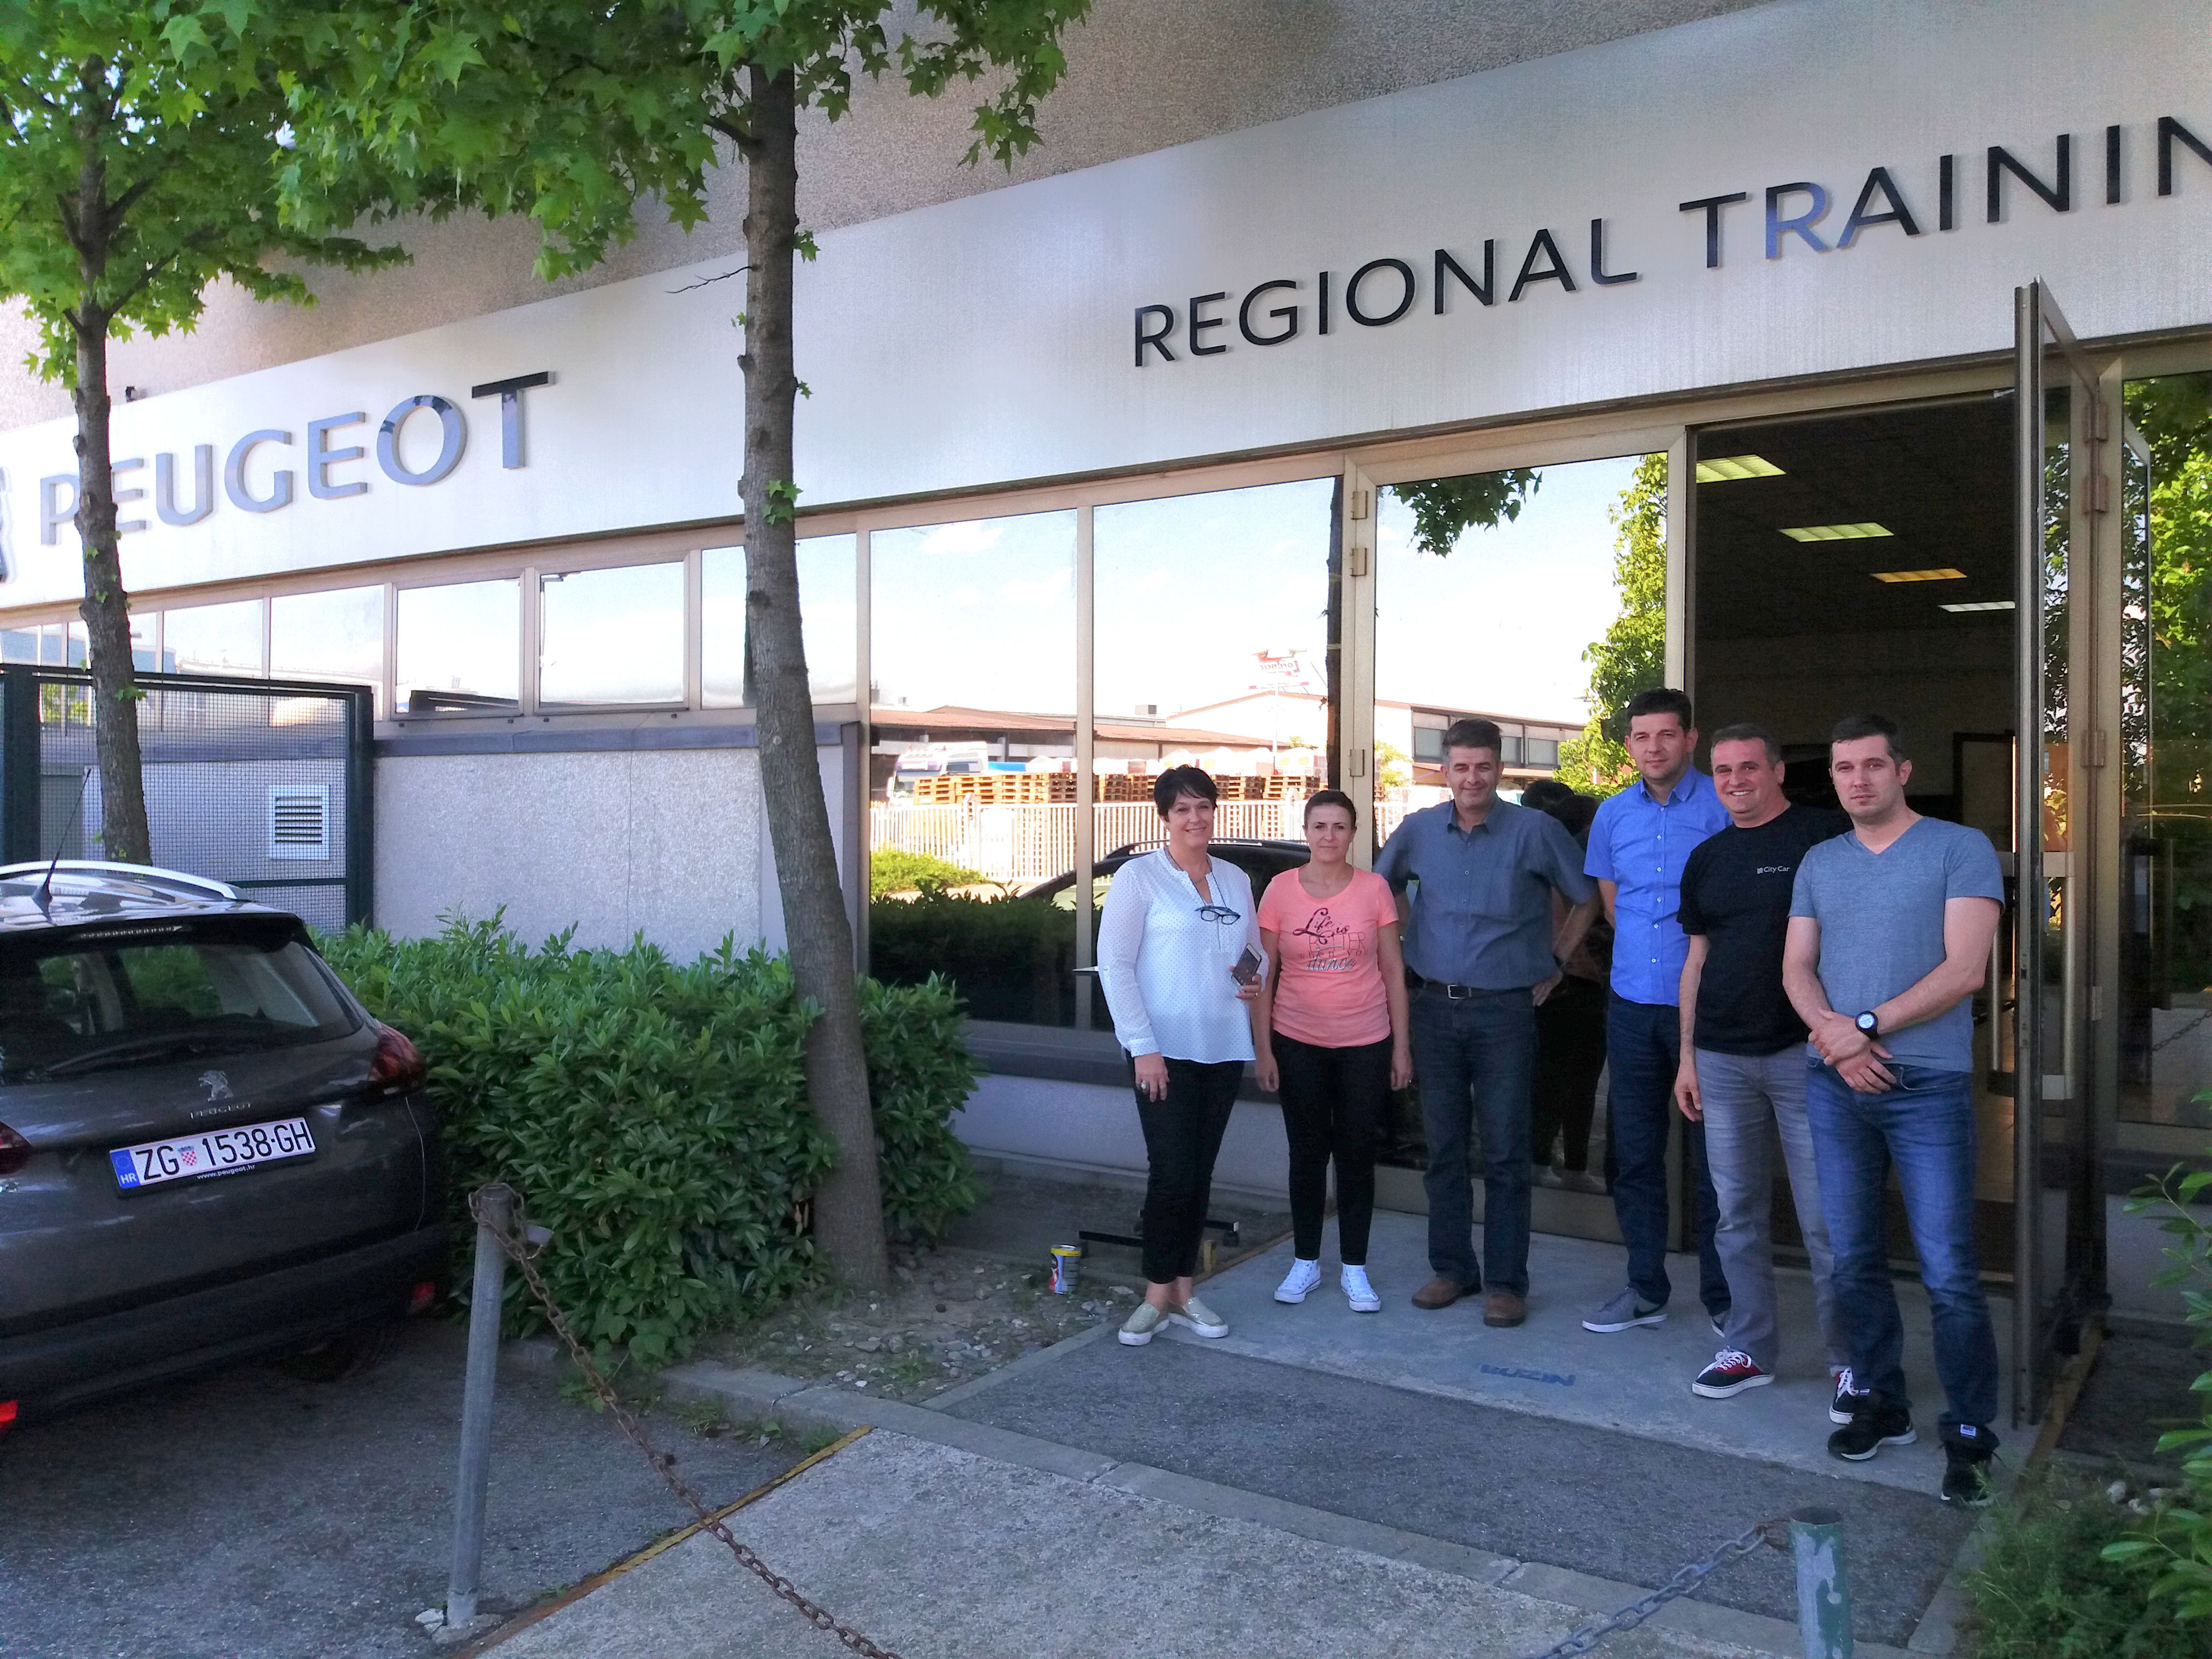 The sales team of Euroimpex at Peugeot regional training center in Zagreb, Croatia